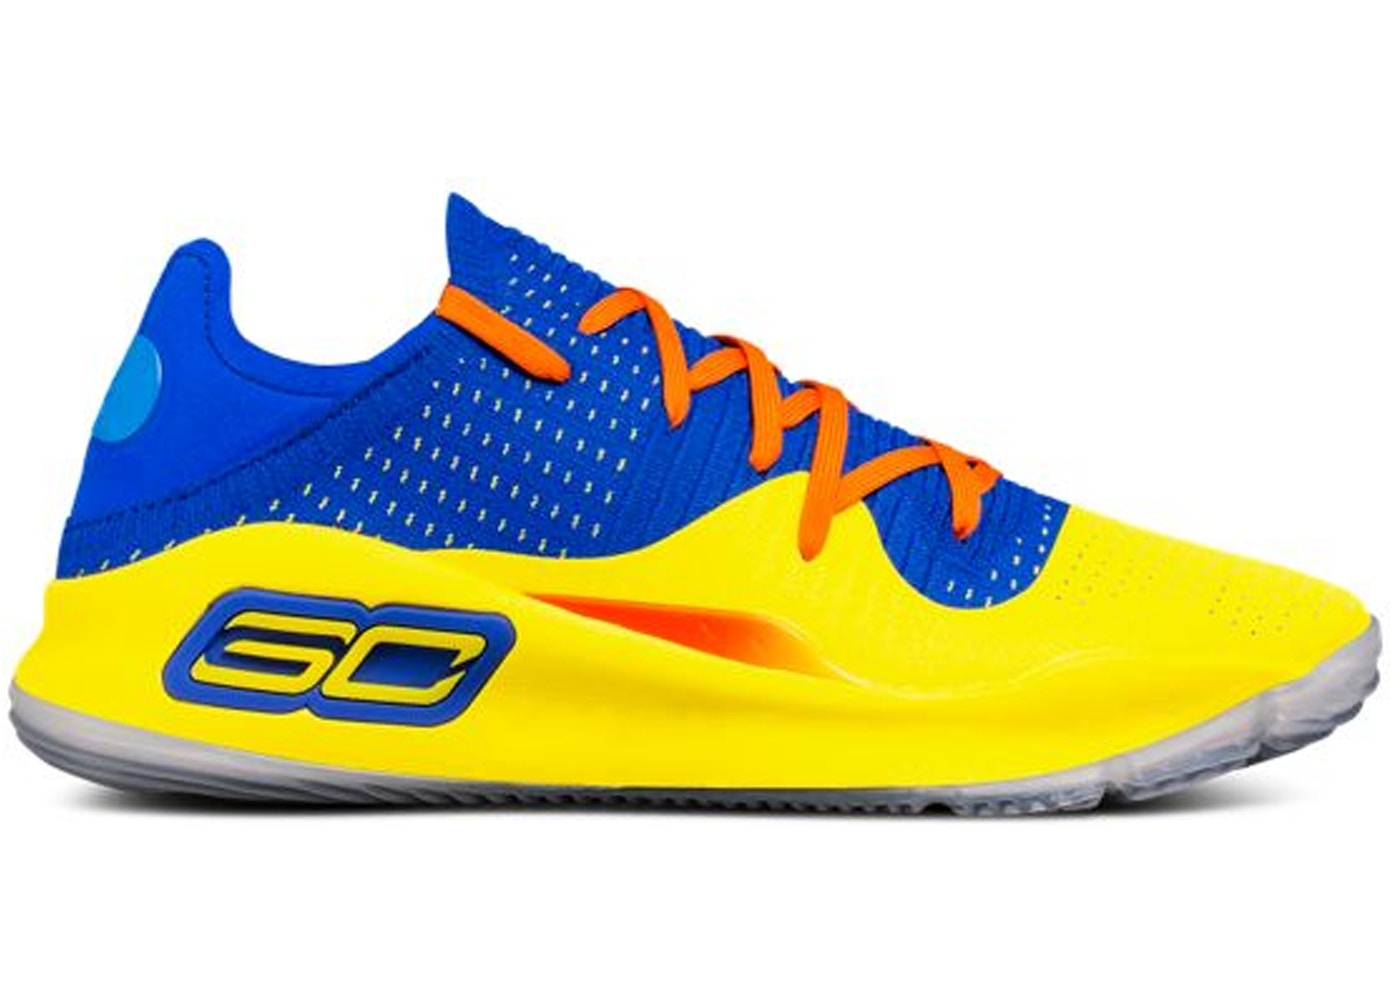 reputable site d8dcd bd048 Buy Under Armour Shoes & Deadstock Sneakers